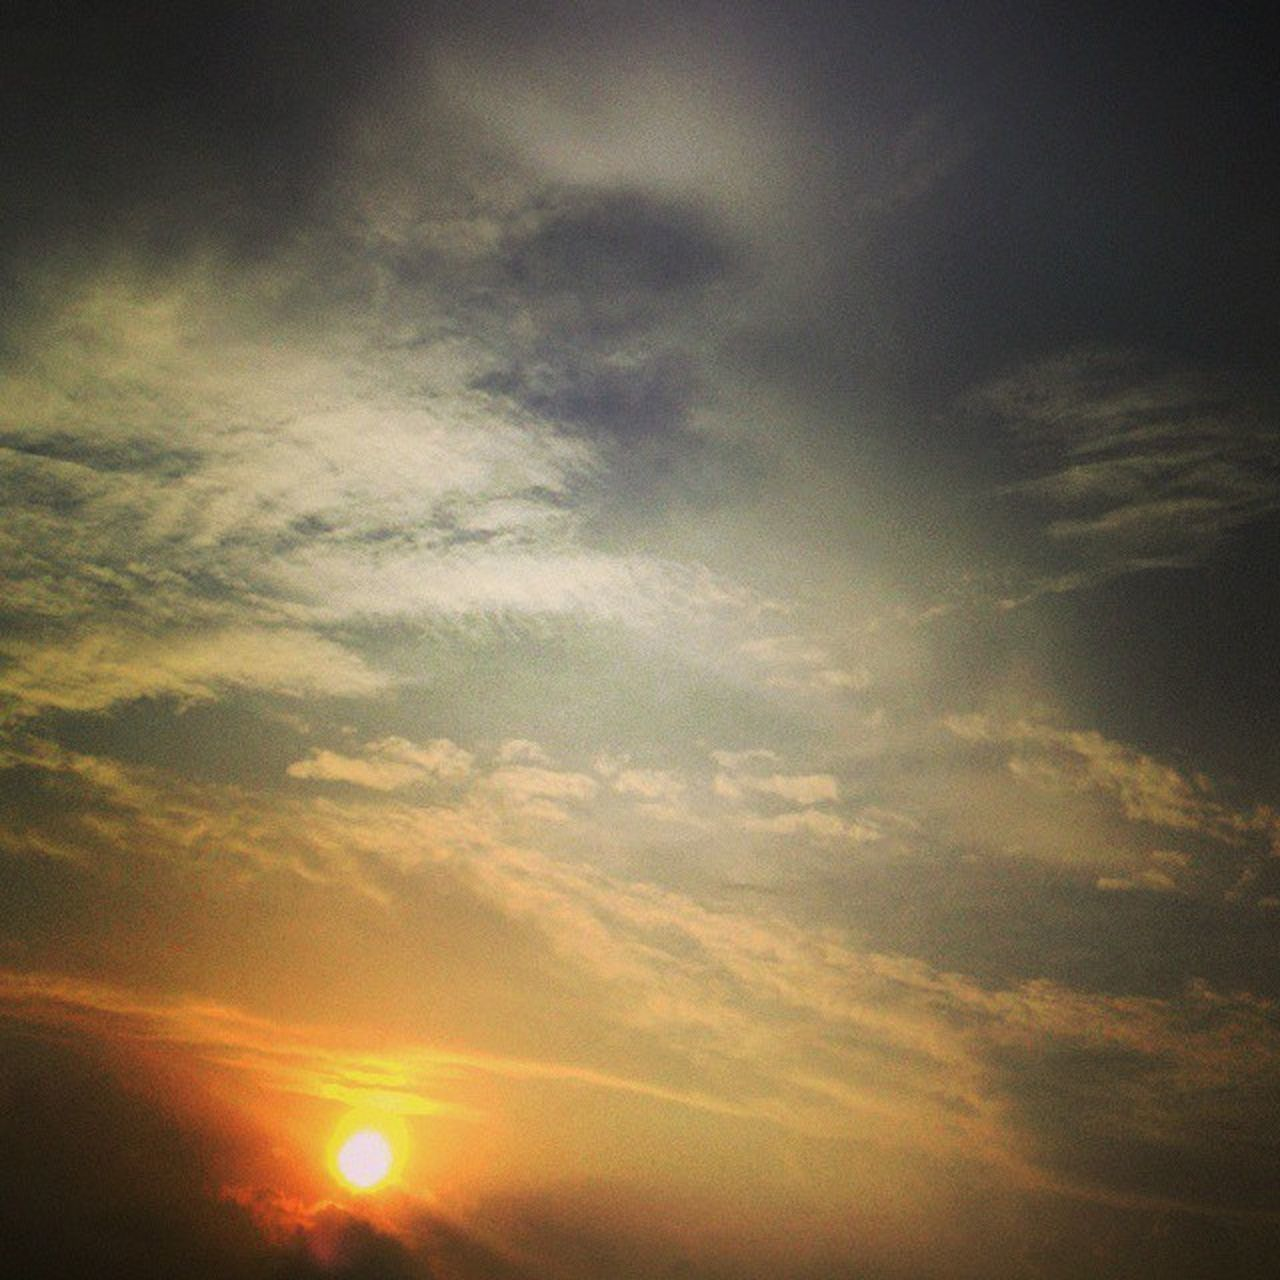 beauty in nature, nature, sky, scenics, sunset, tranquility, cloud - sky, sun, low angle view, sky only, no people, outdoors, day